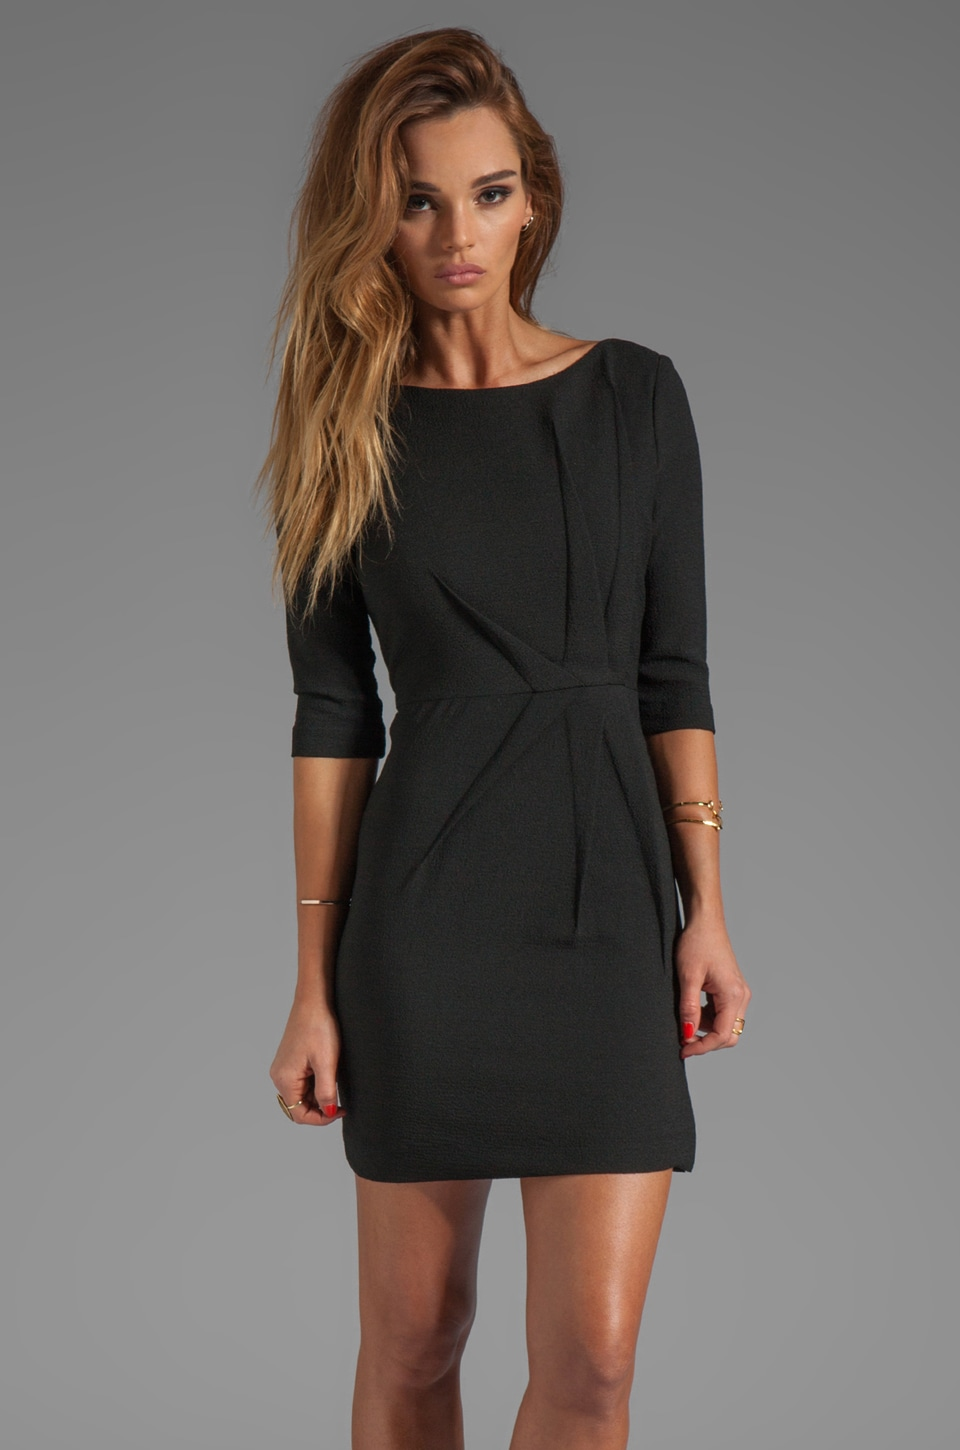 Black Halo Falcon Mini Dress in Black